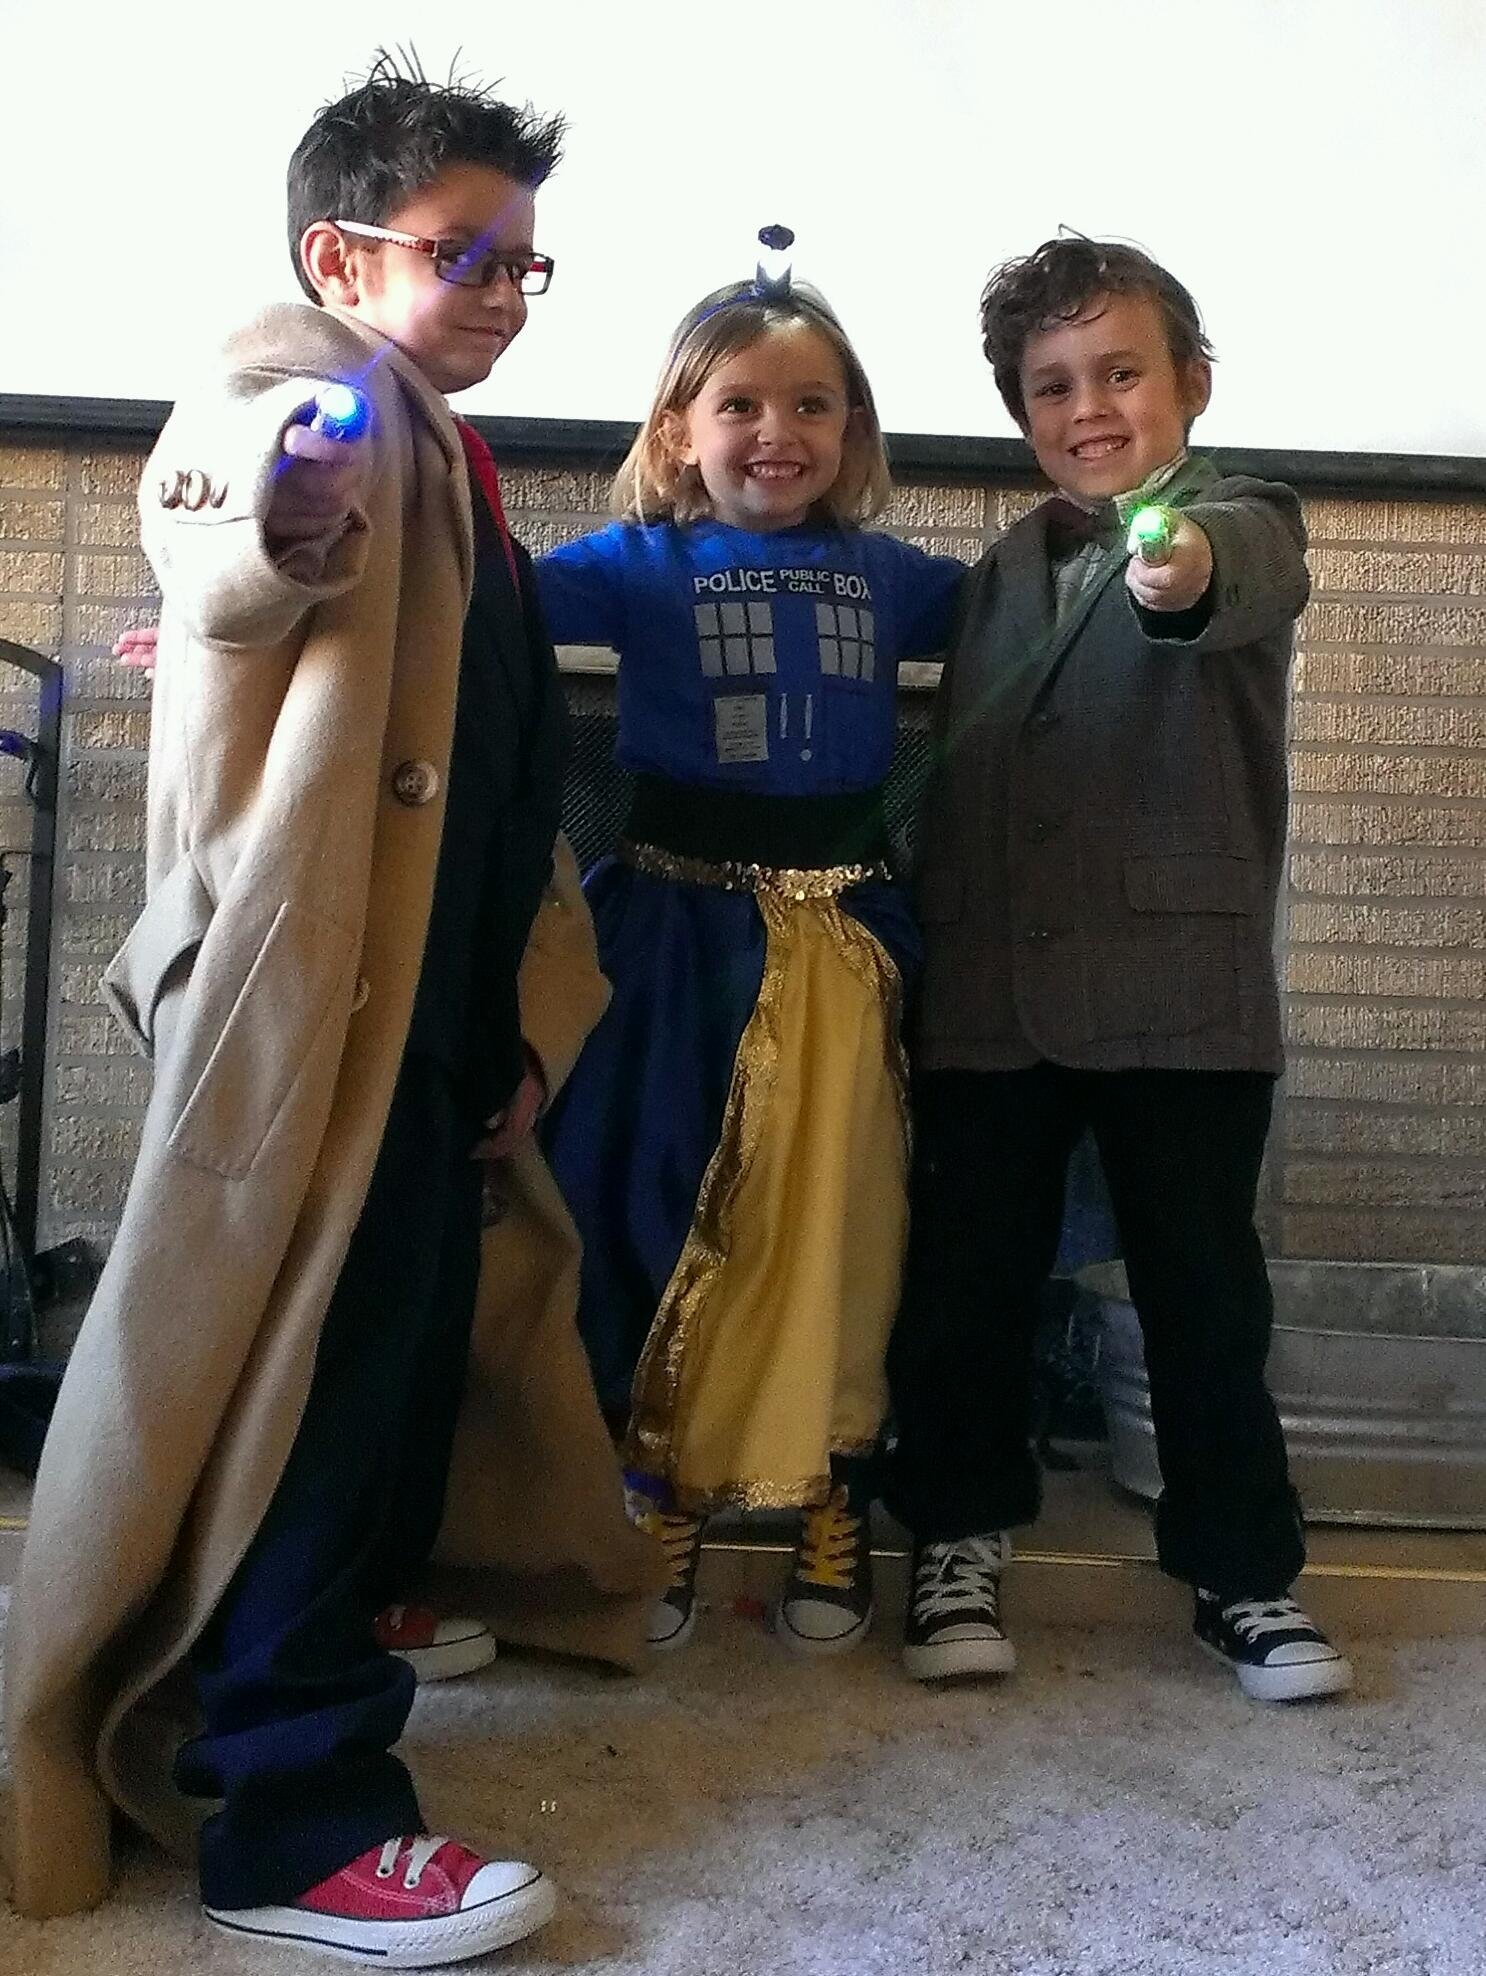 10 great halloween costume ideas for kids, familys & pets